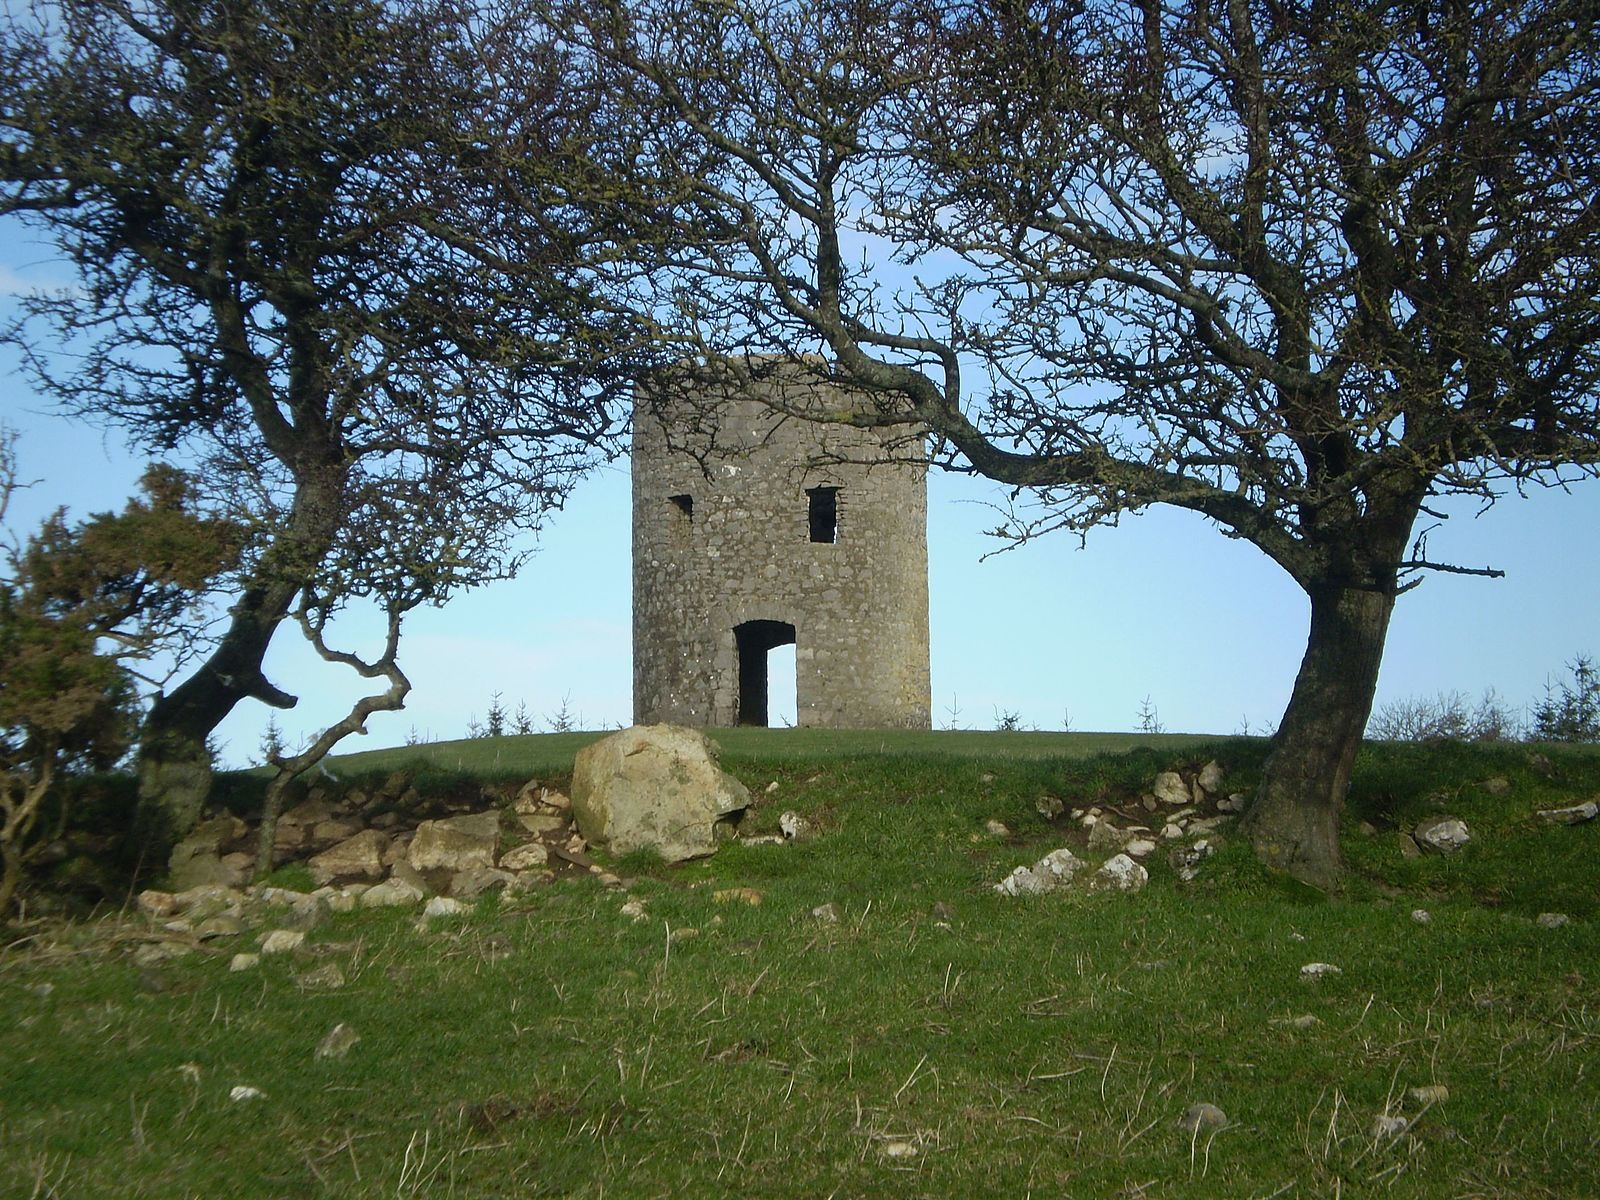 Tower Hill in Abergele - Things to Do in North Wales